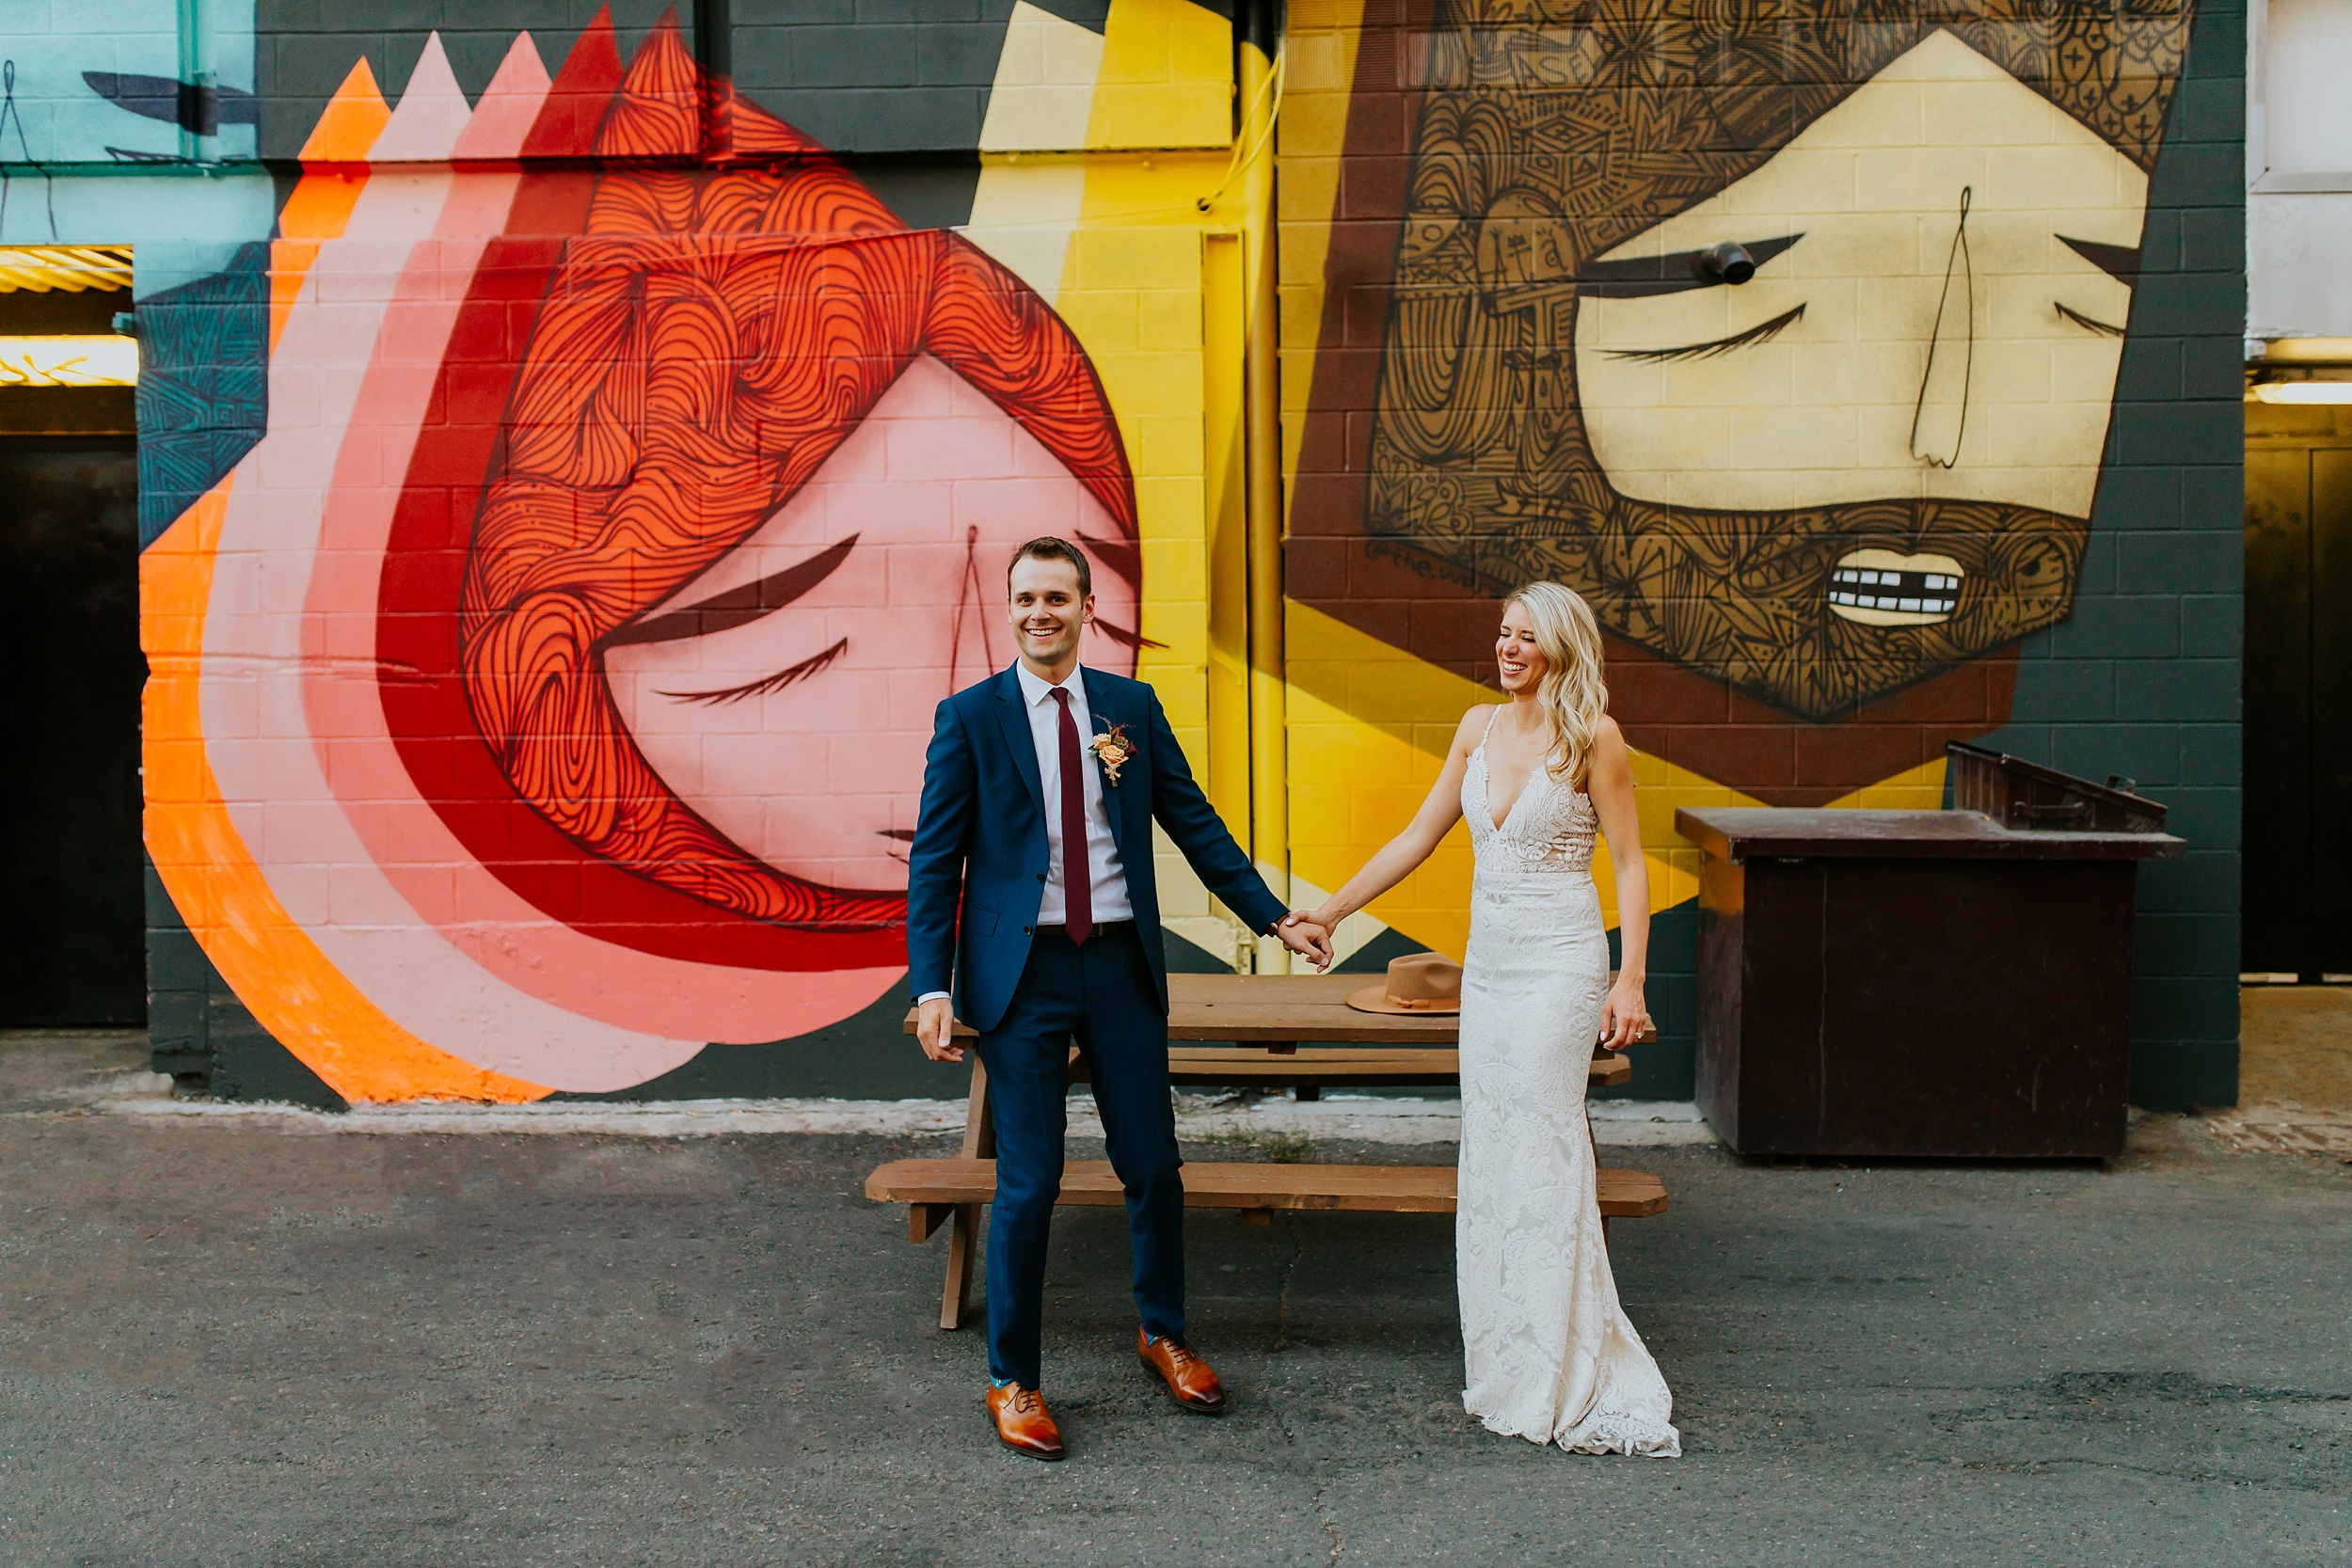 Bride and groom's elopement in the city with street murals!